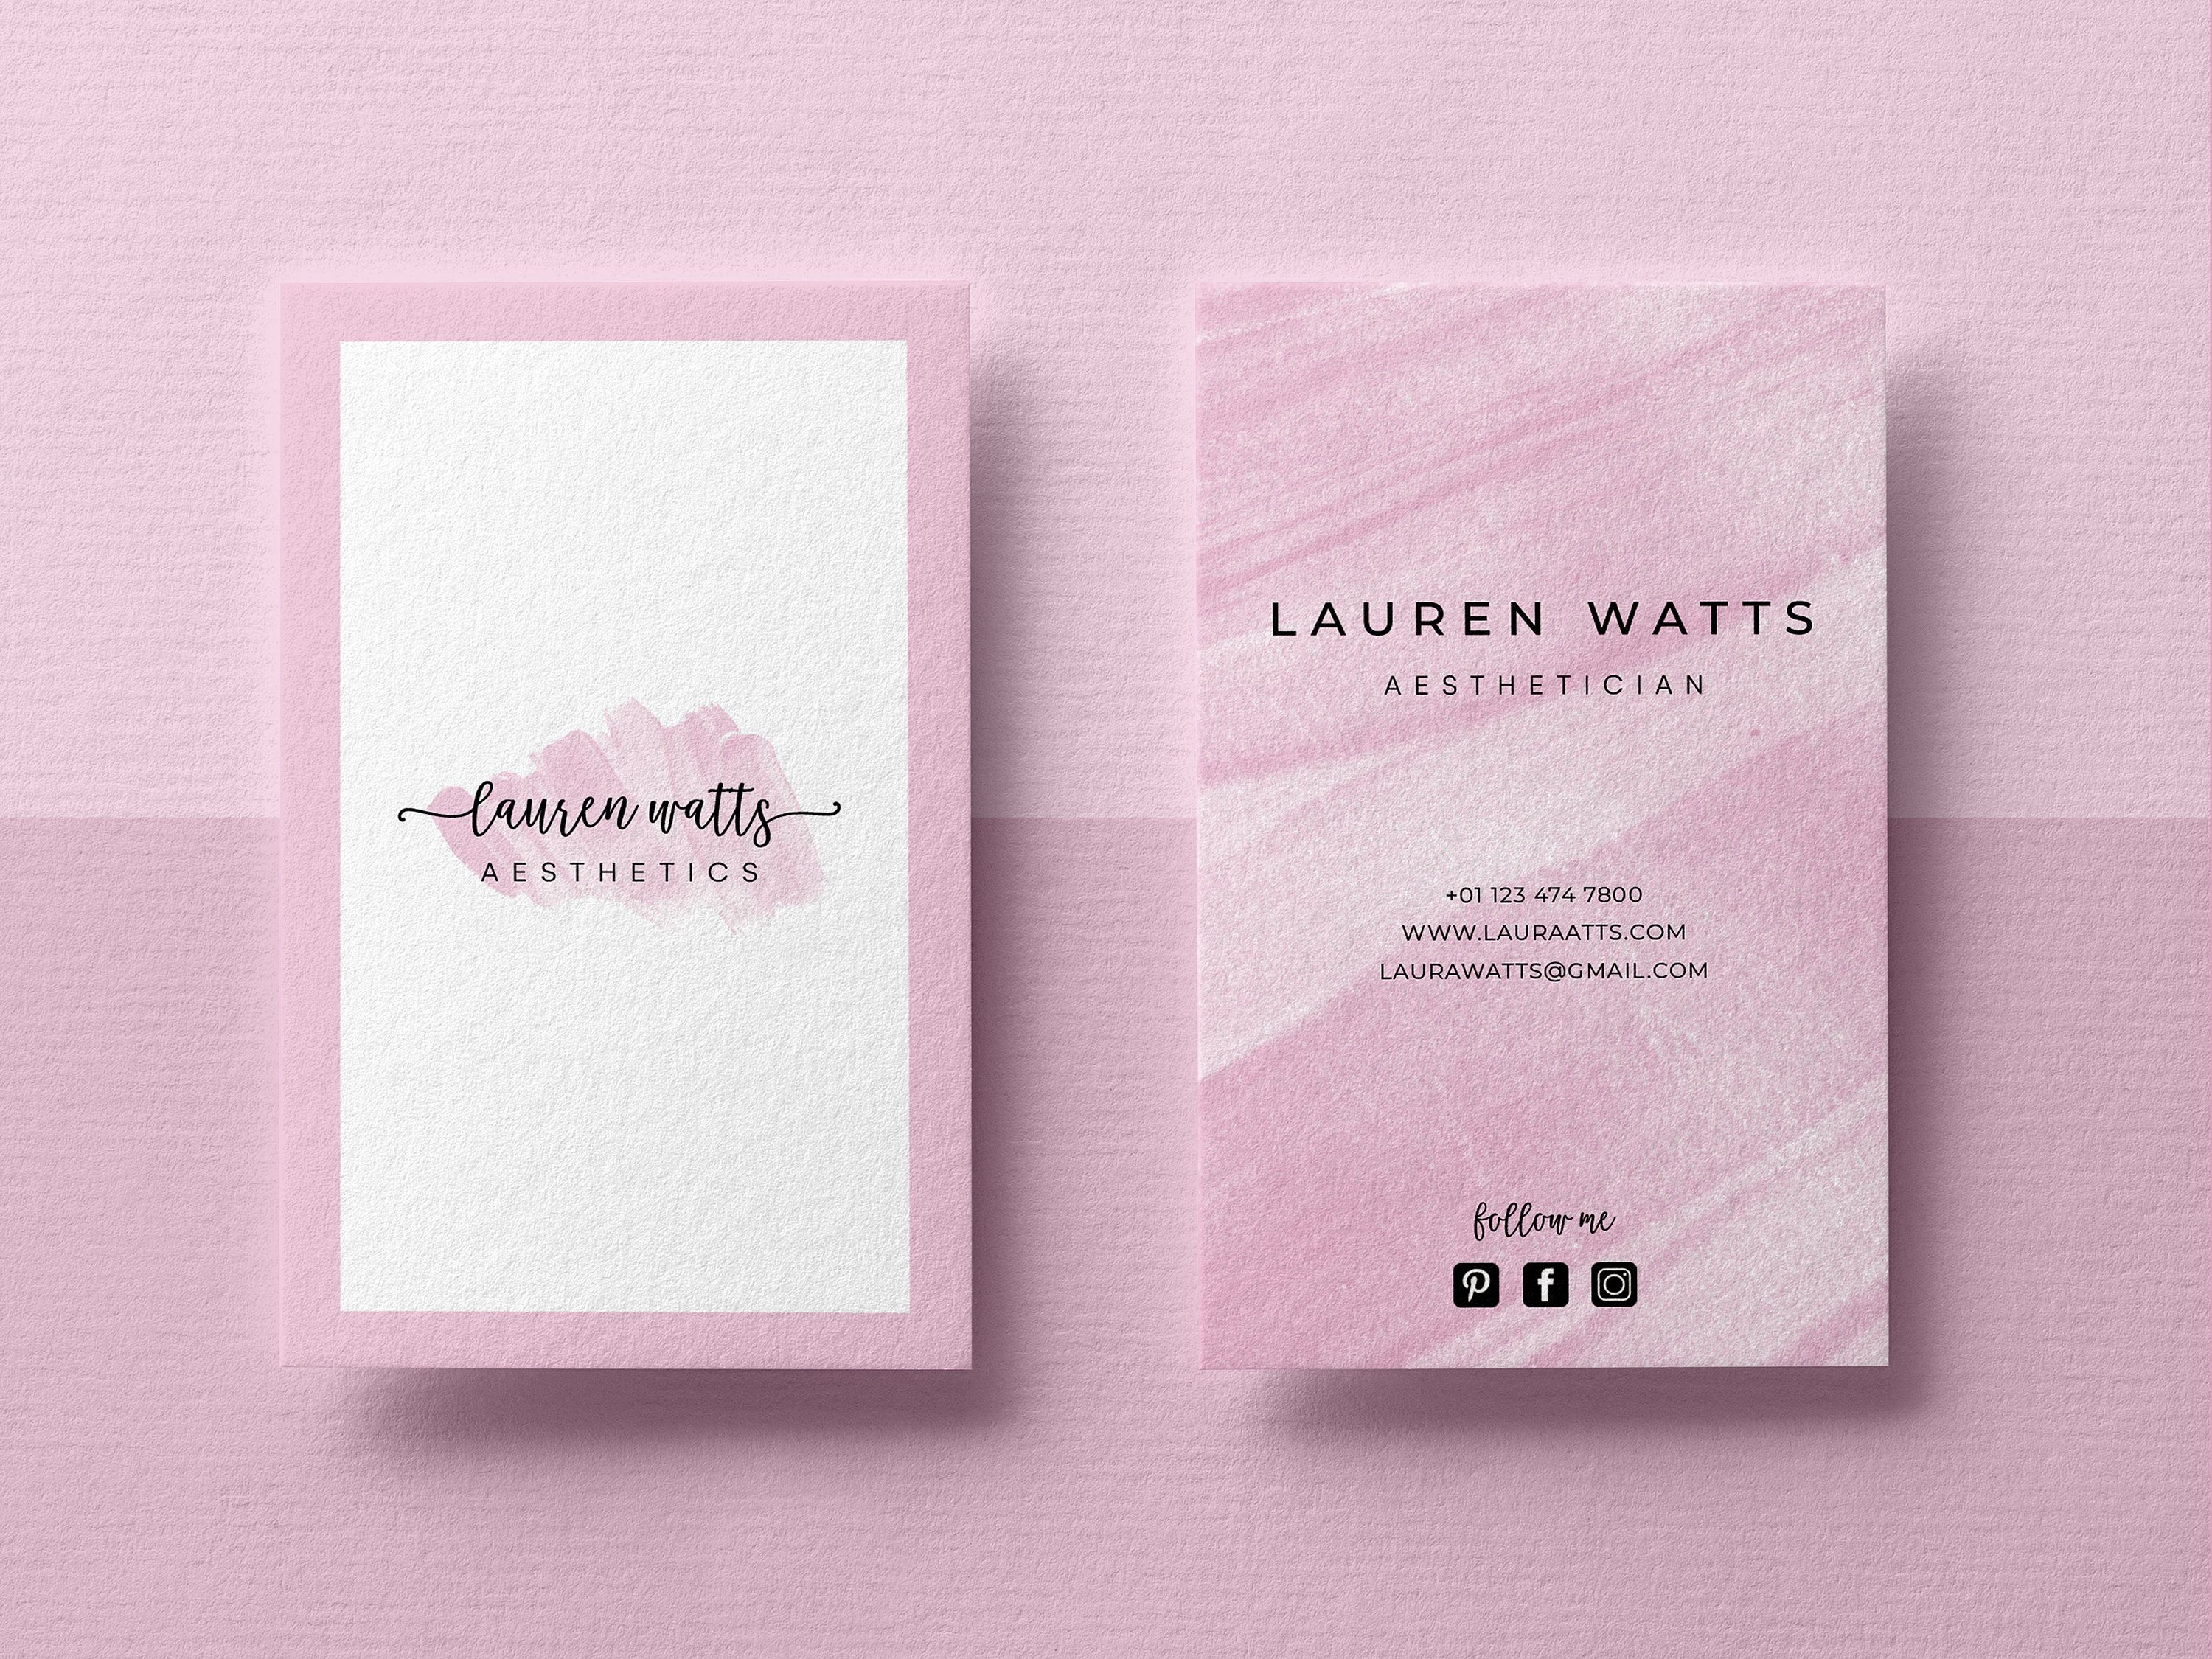 Business Cards Business Card Templates Editable Business Etsy In 2020 Business Card Design Simple Minimalist Card Design Business Cards Watercolor